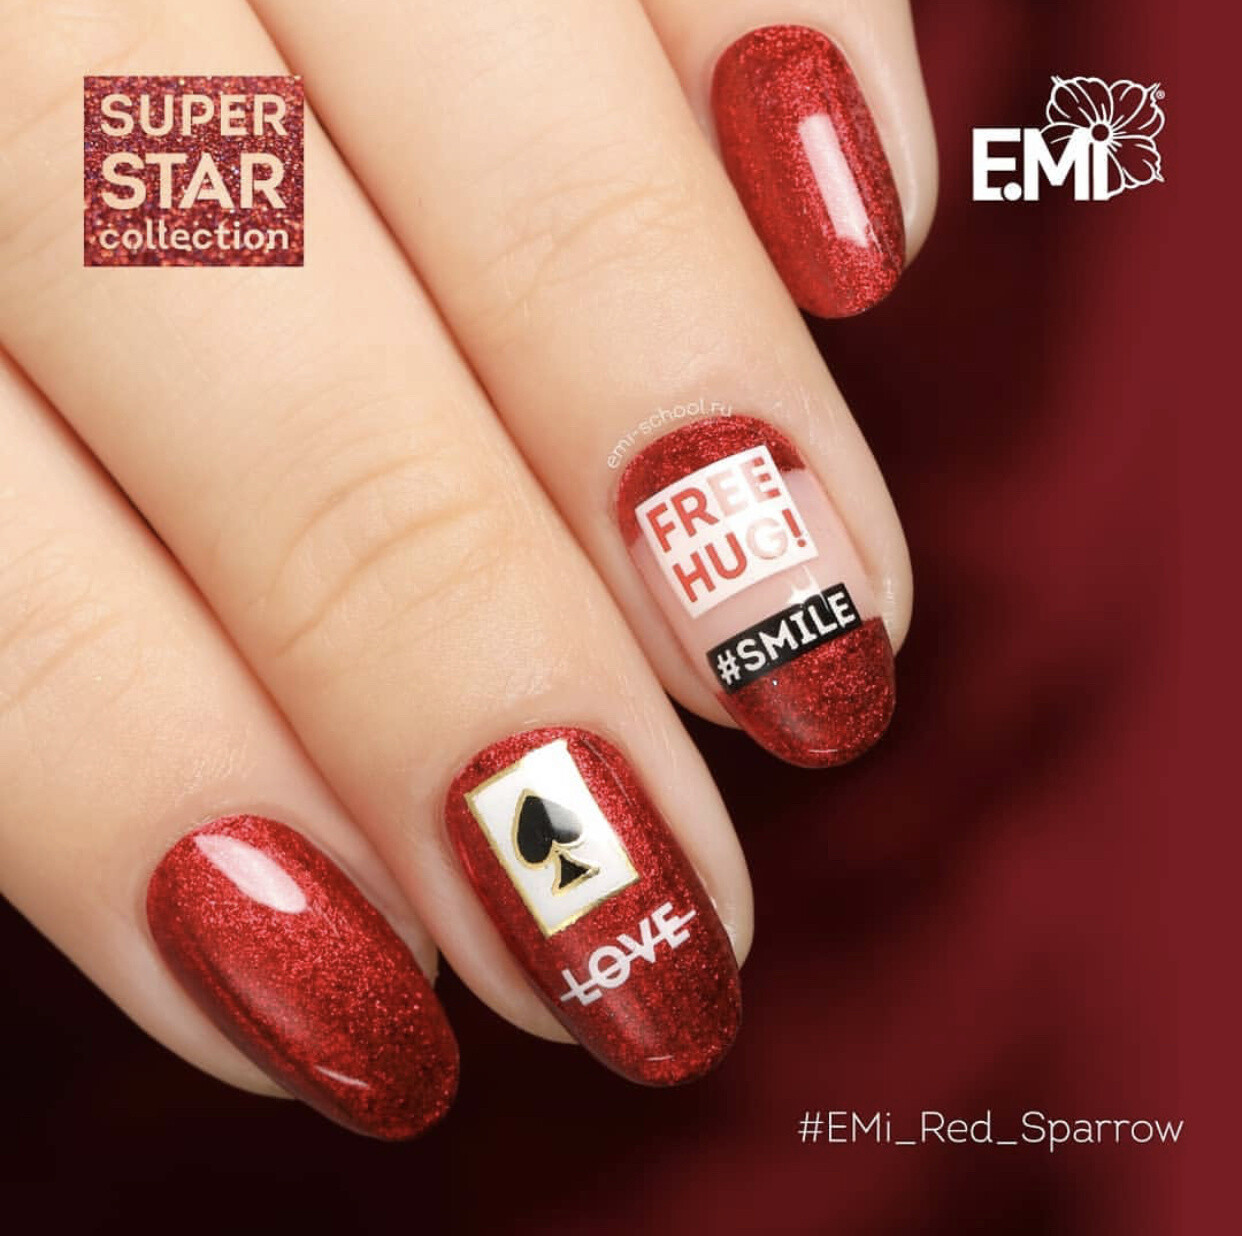 Super Star Red Sparrow, 5 ml.